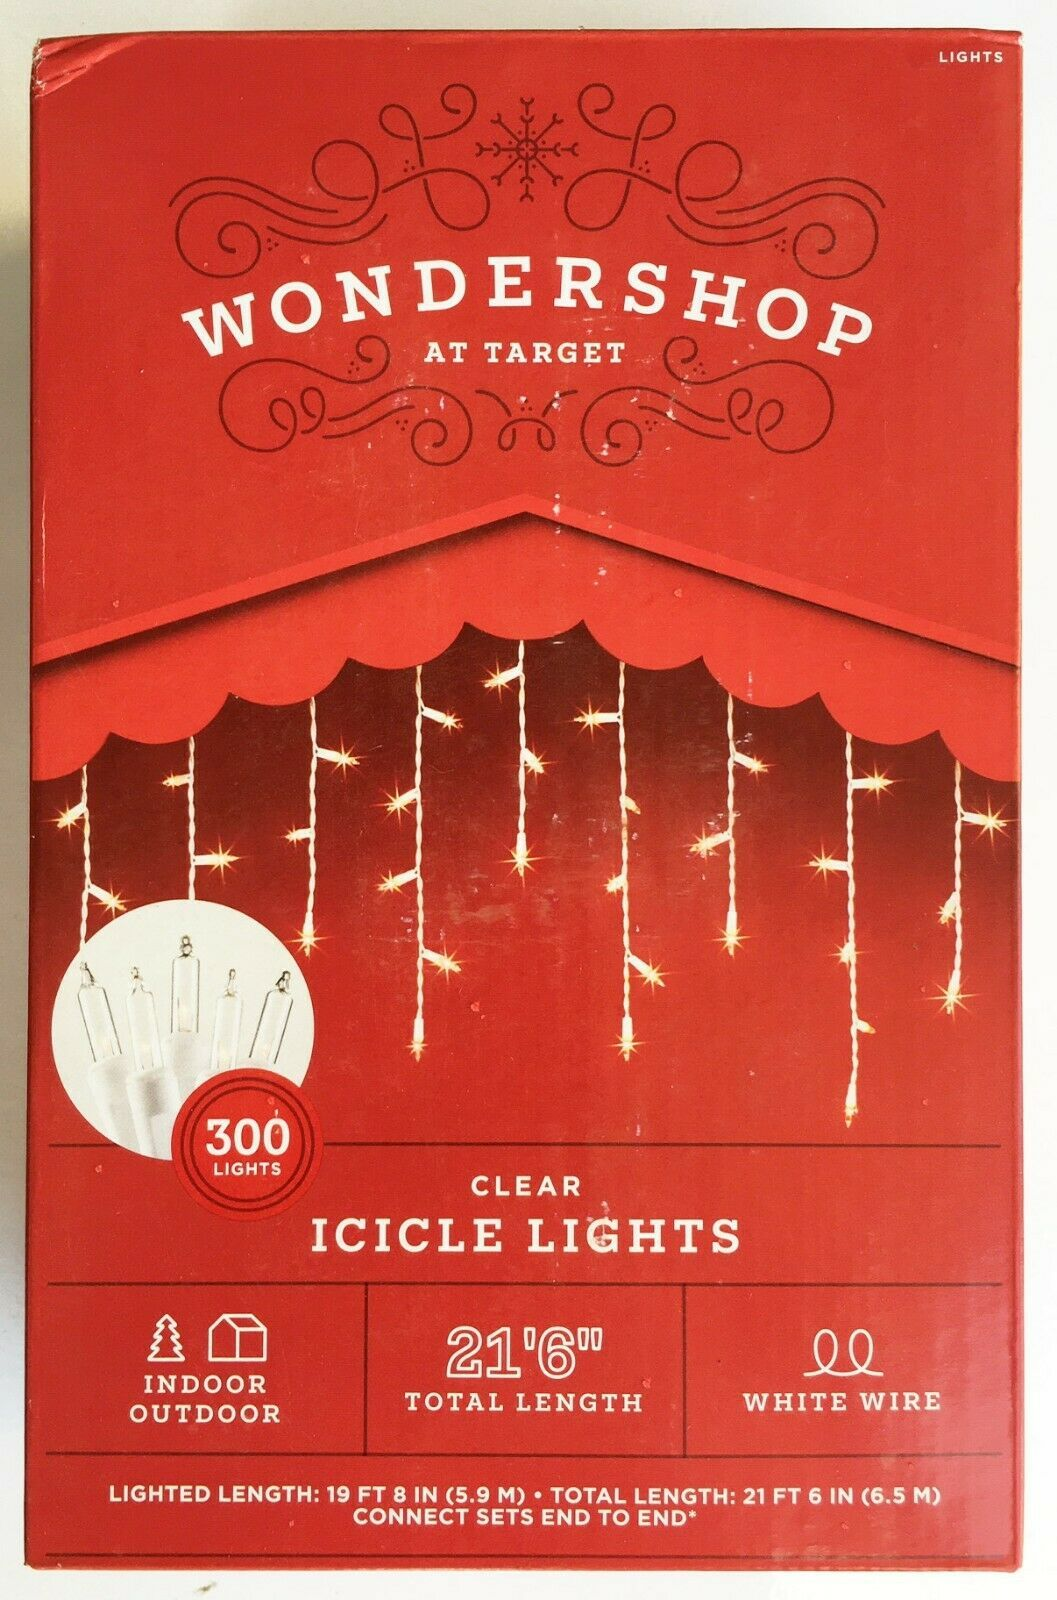 300ct Christmas Incandescent Icicle Lights Clear with White Wire - Wondershop